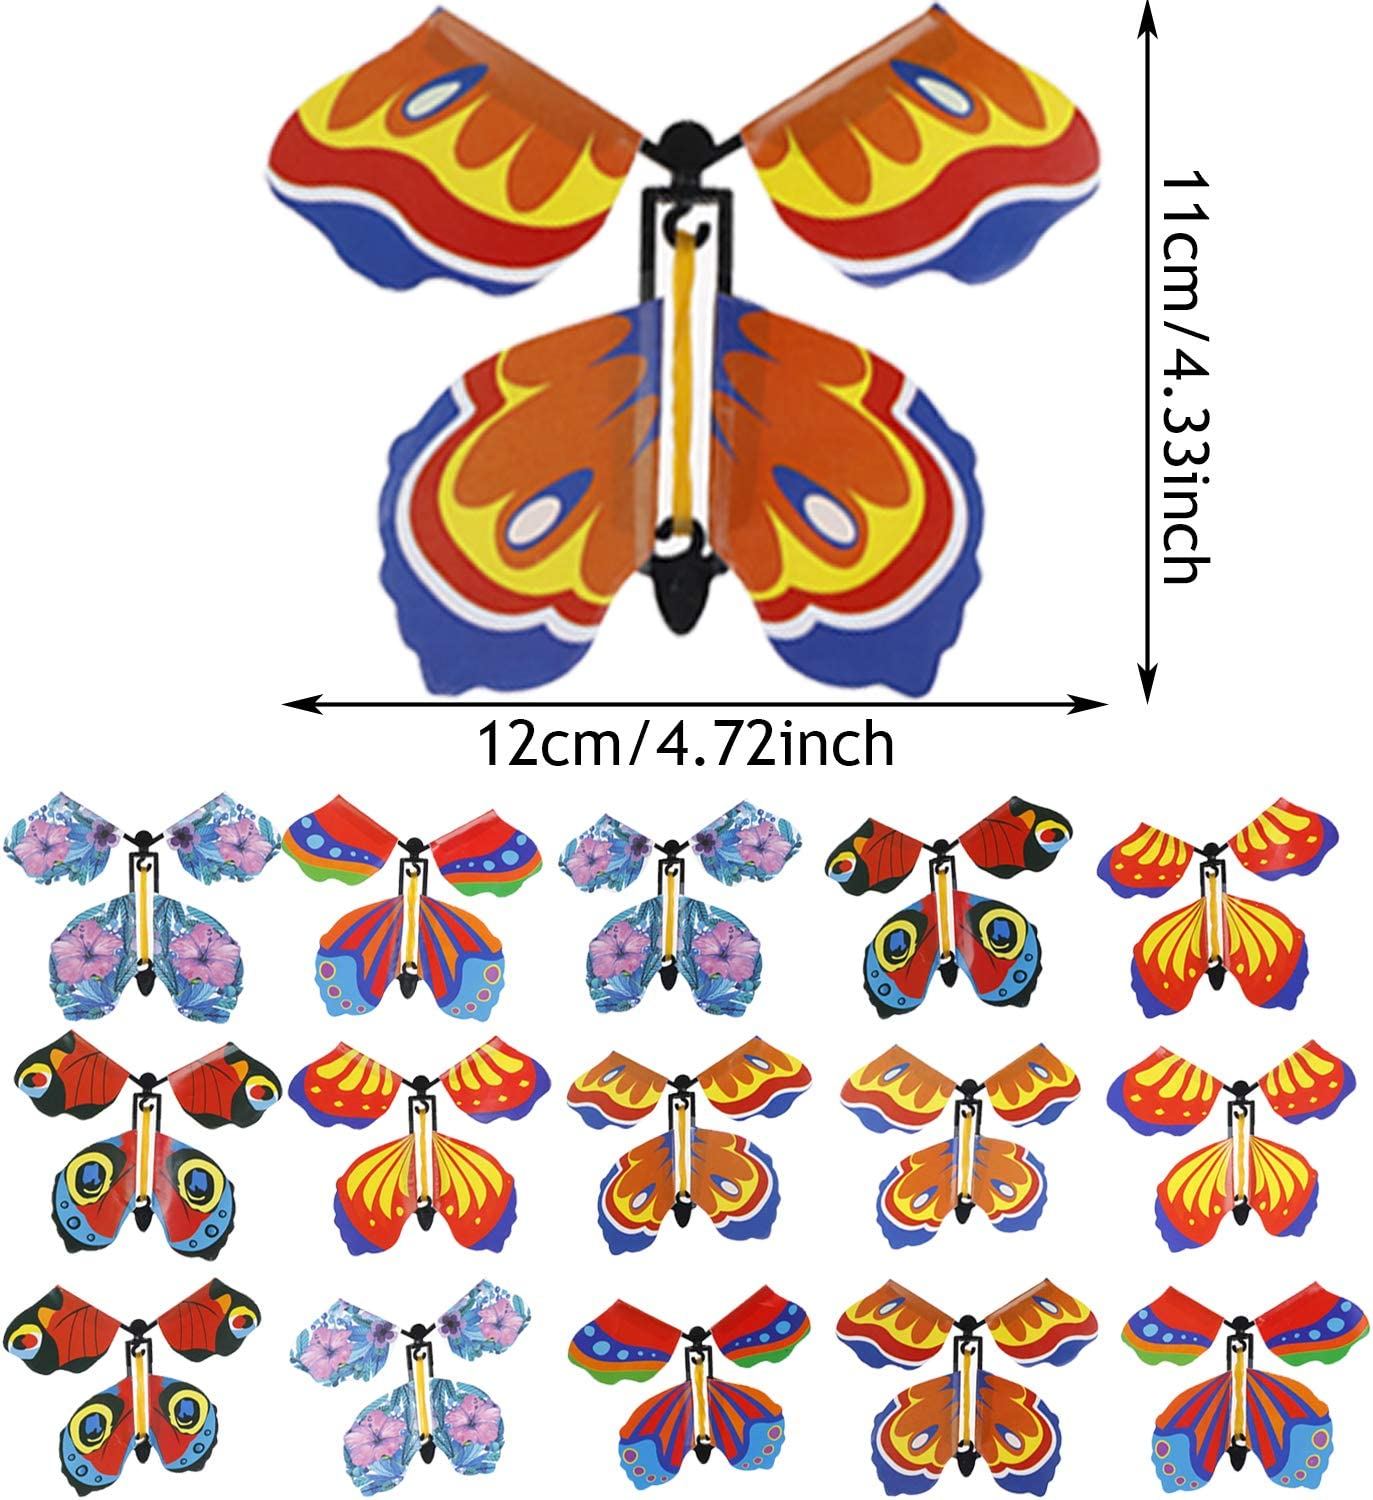 Olgaa 20Pc Magic Flying Butterfly Wind Up Toys for Kids Girls Rubber Band Butterfly Toy for Surprise Gift or Party Playing